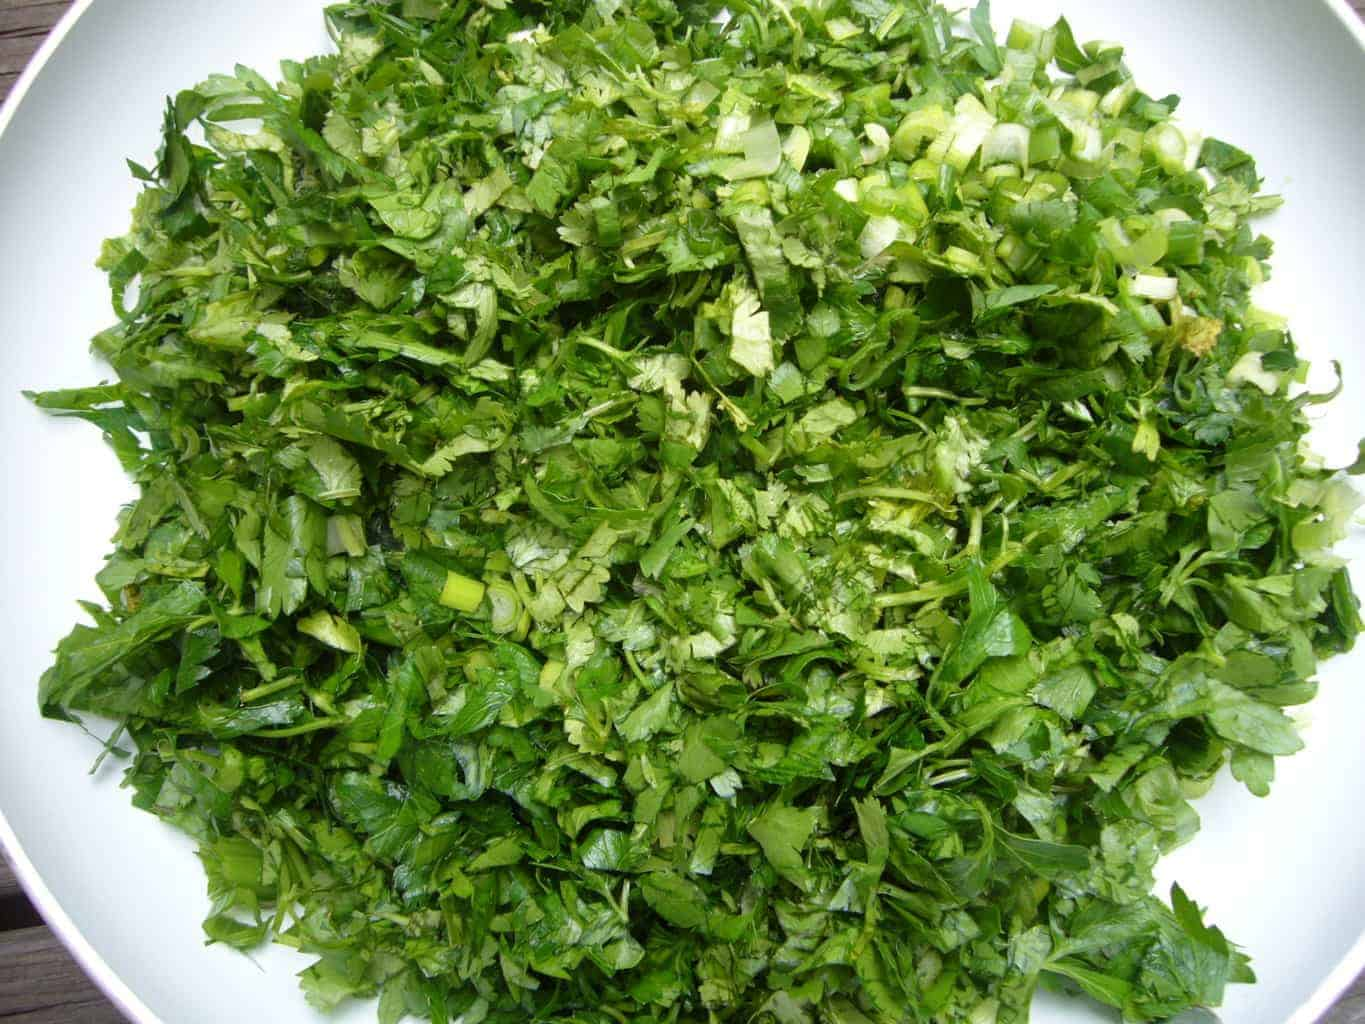 Mixture of fresh herbs for making ghormeh sabzi.